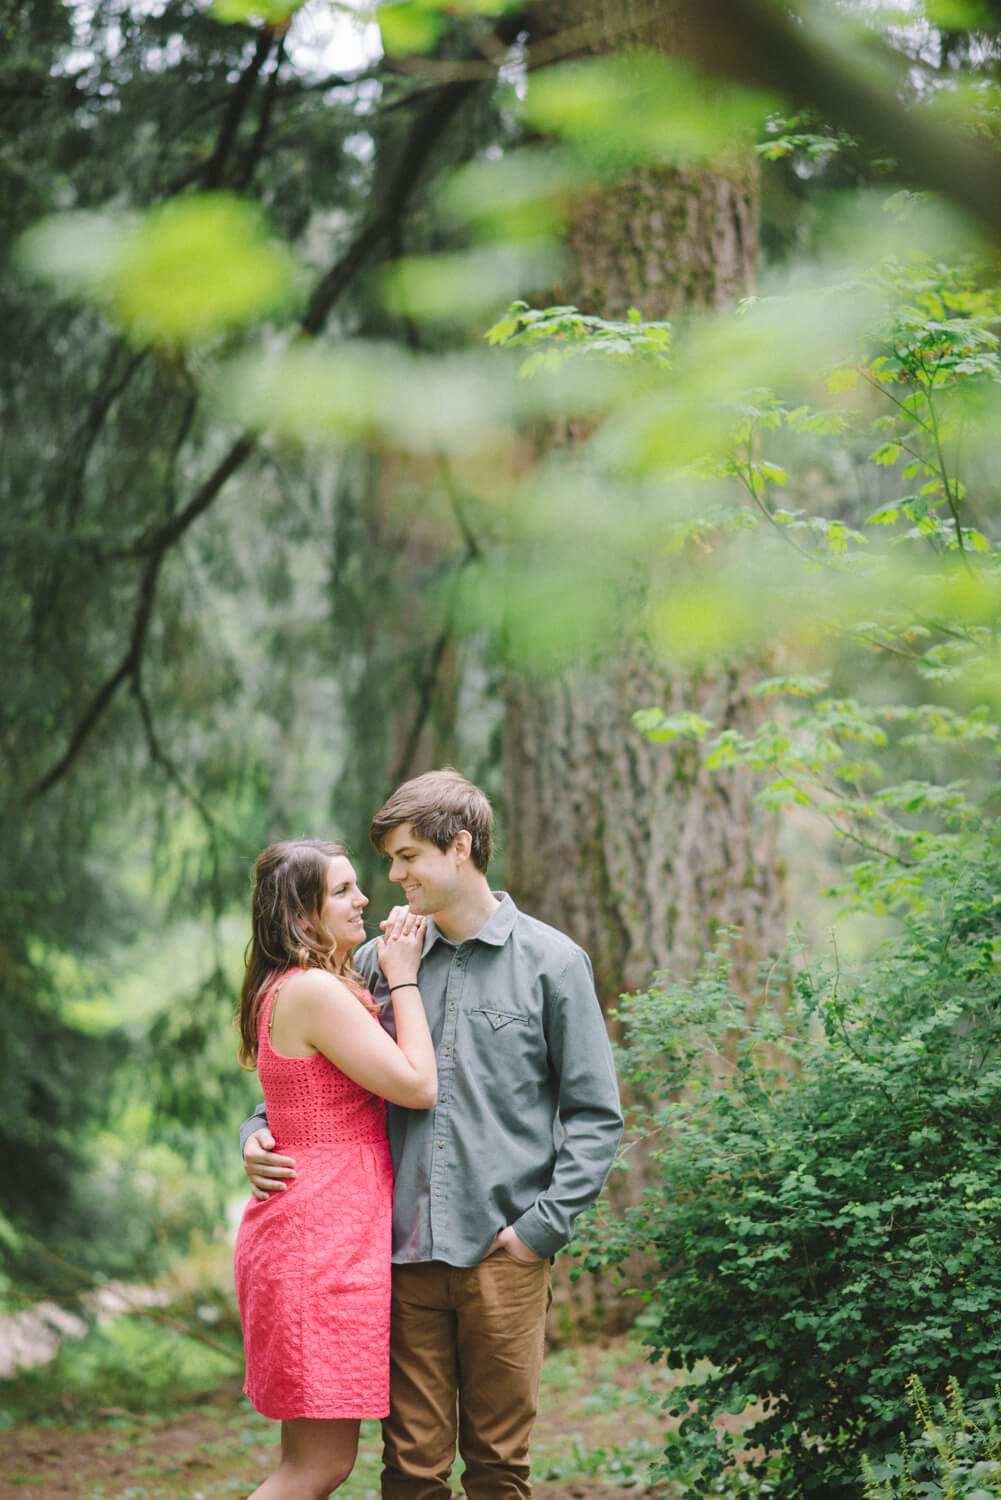 portland-engagement-photography-washington-park-hoyt-arboretum-shelley-marie-photo-160.jpg